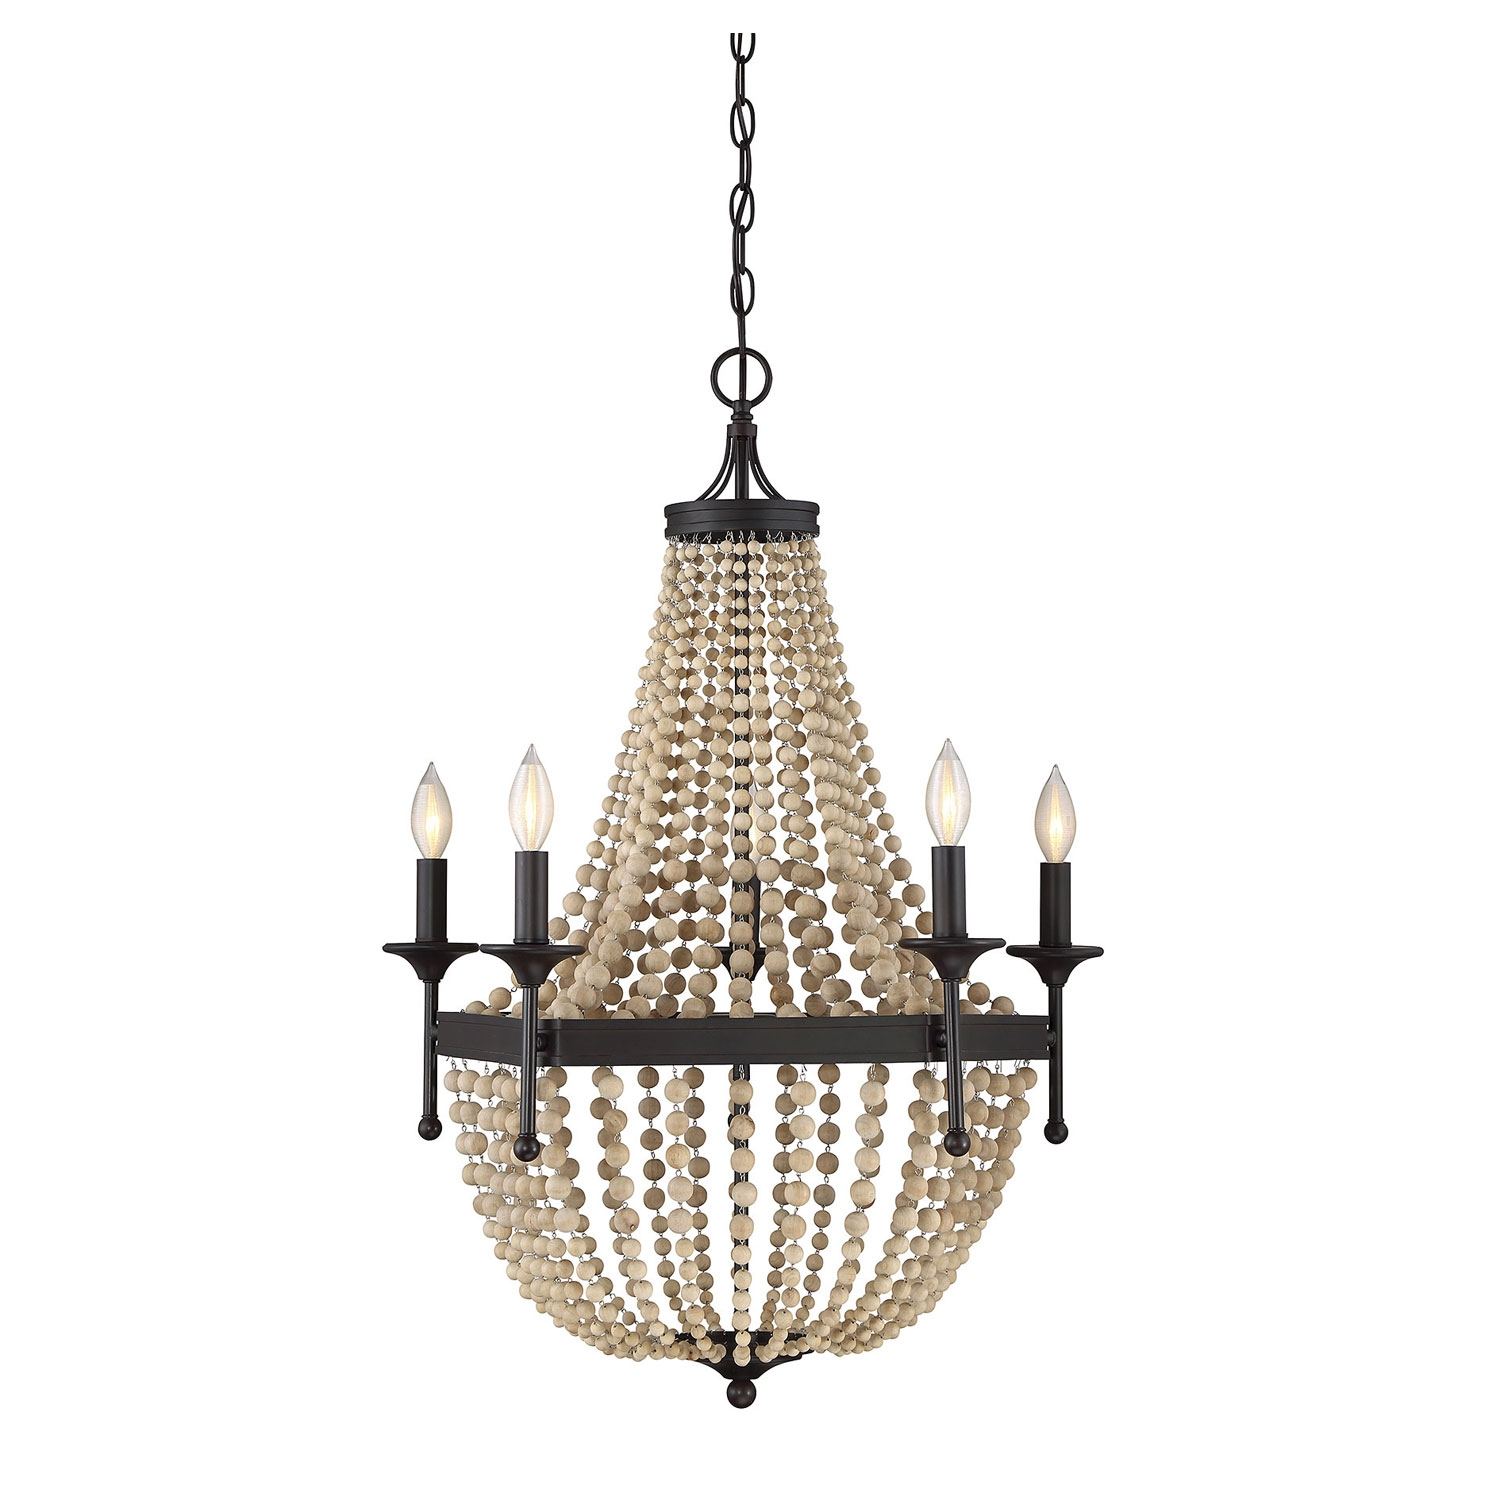 Chandeliers Crystal Modern Iron Shab Chic Country French Regarding French Style Chandeliers (Image 3 of 15)